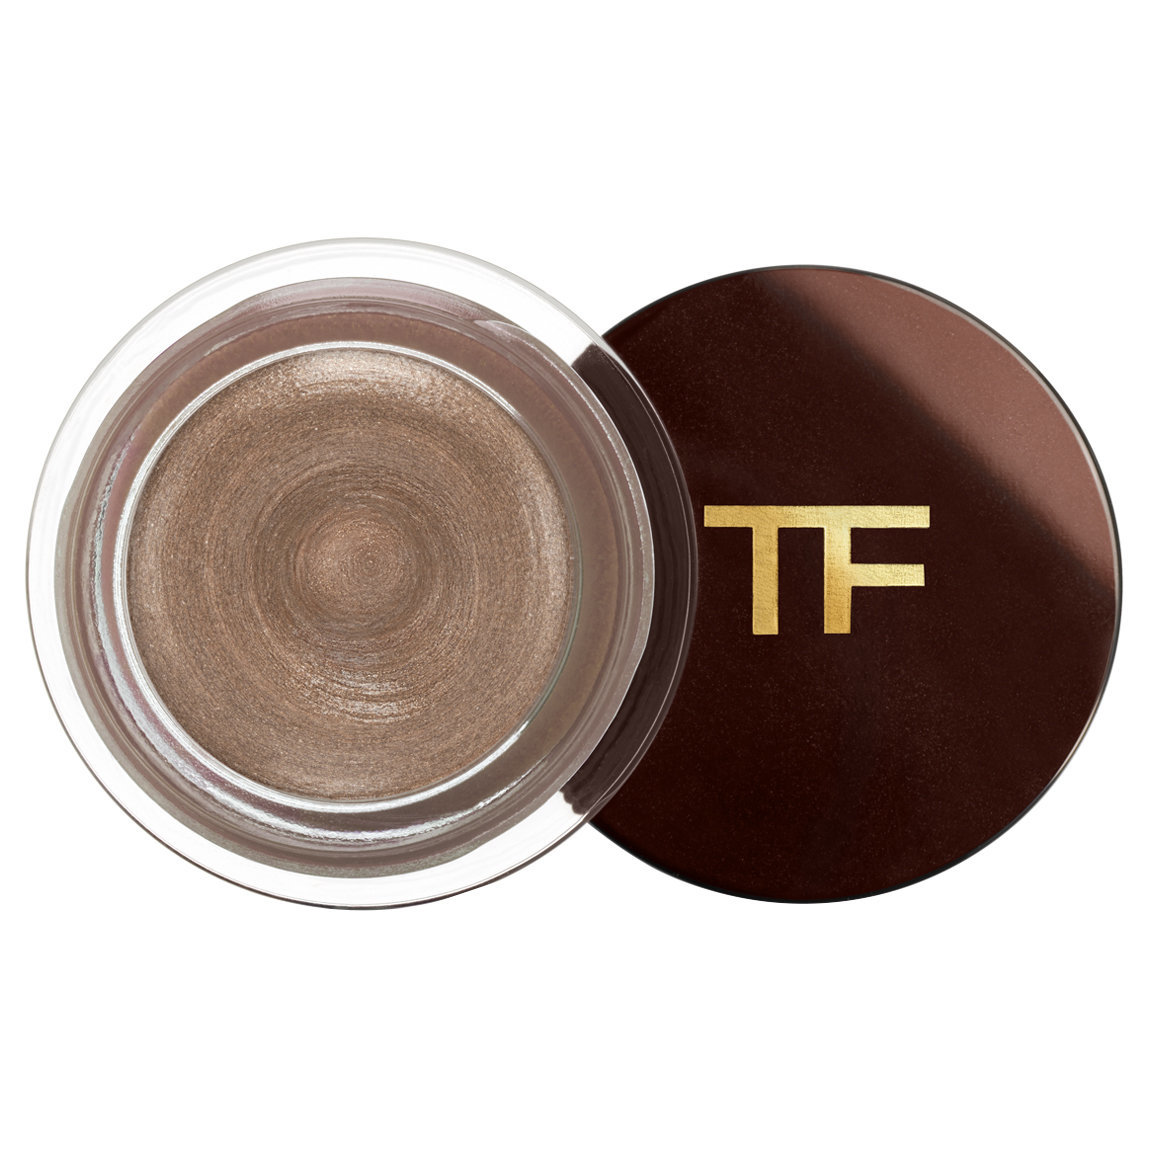 TOM FORD Cream Color for Eyes Platinum alternative view 1.